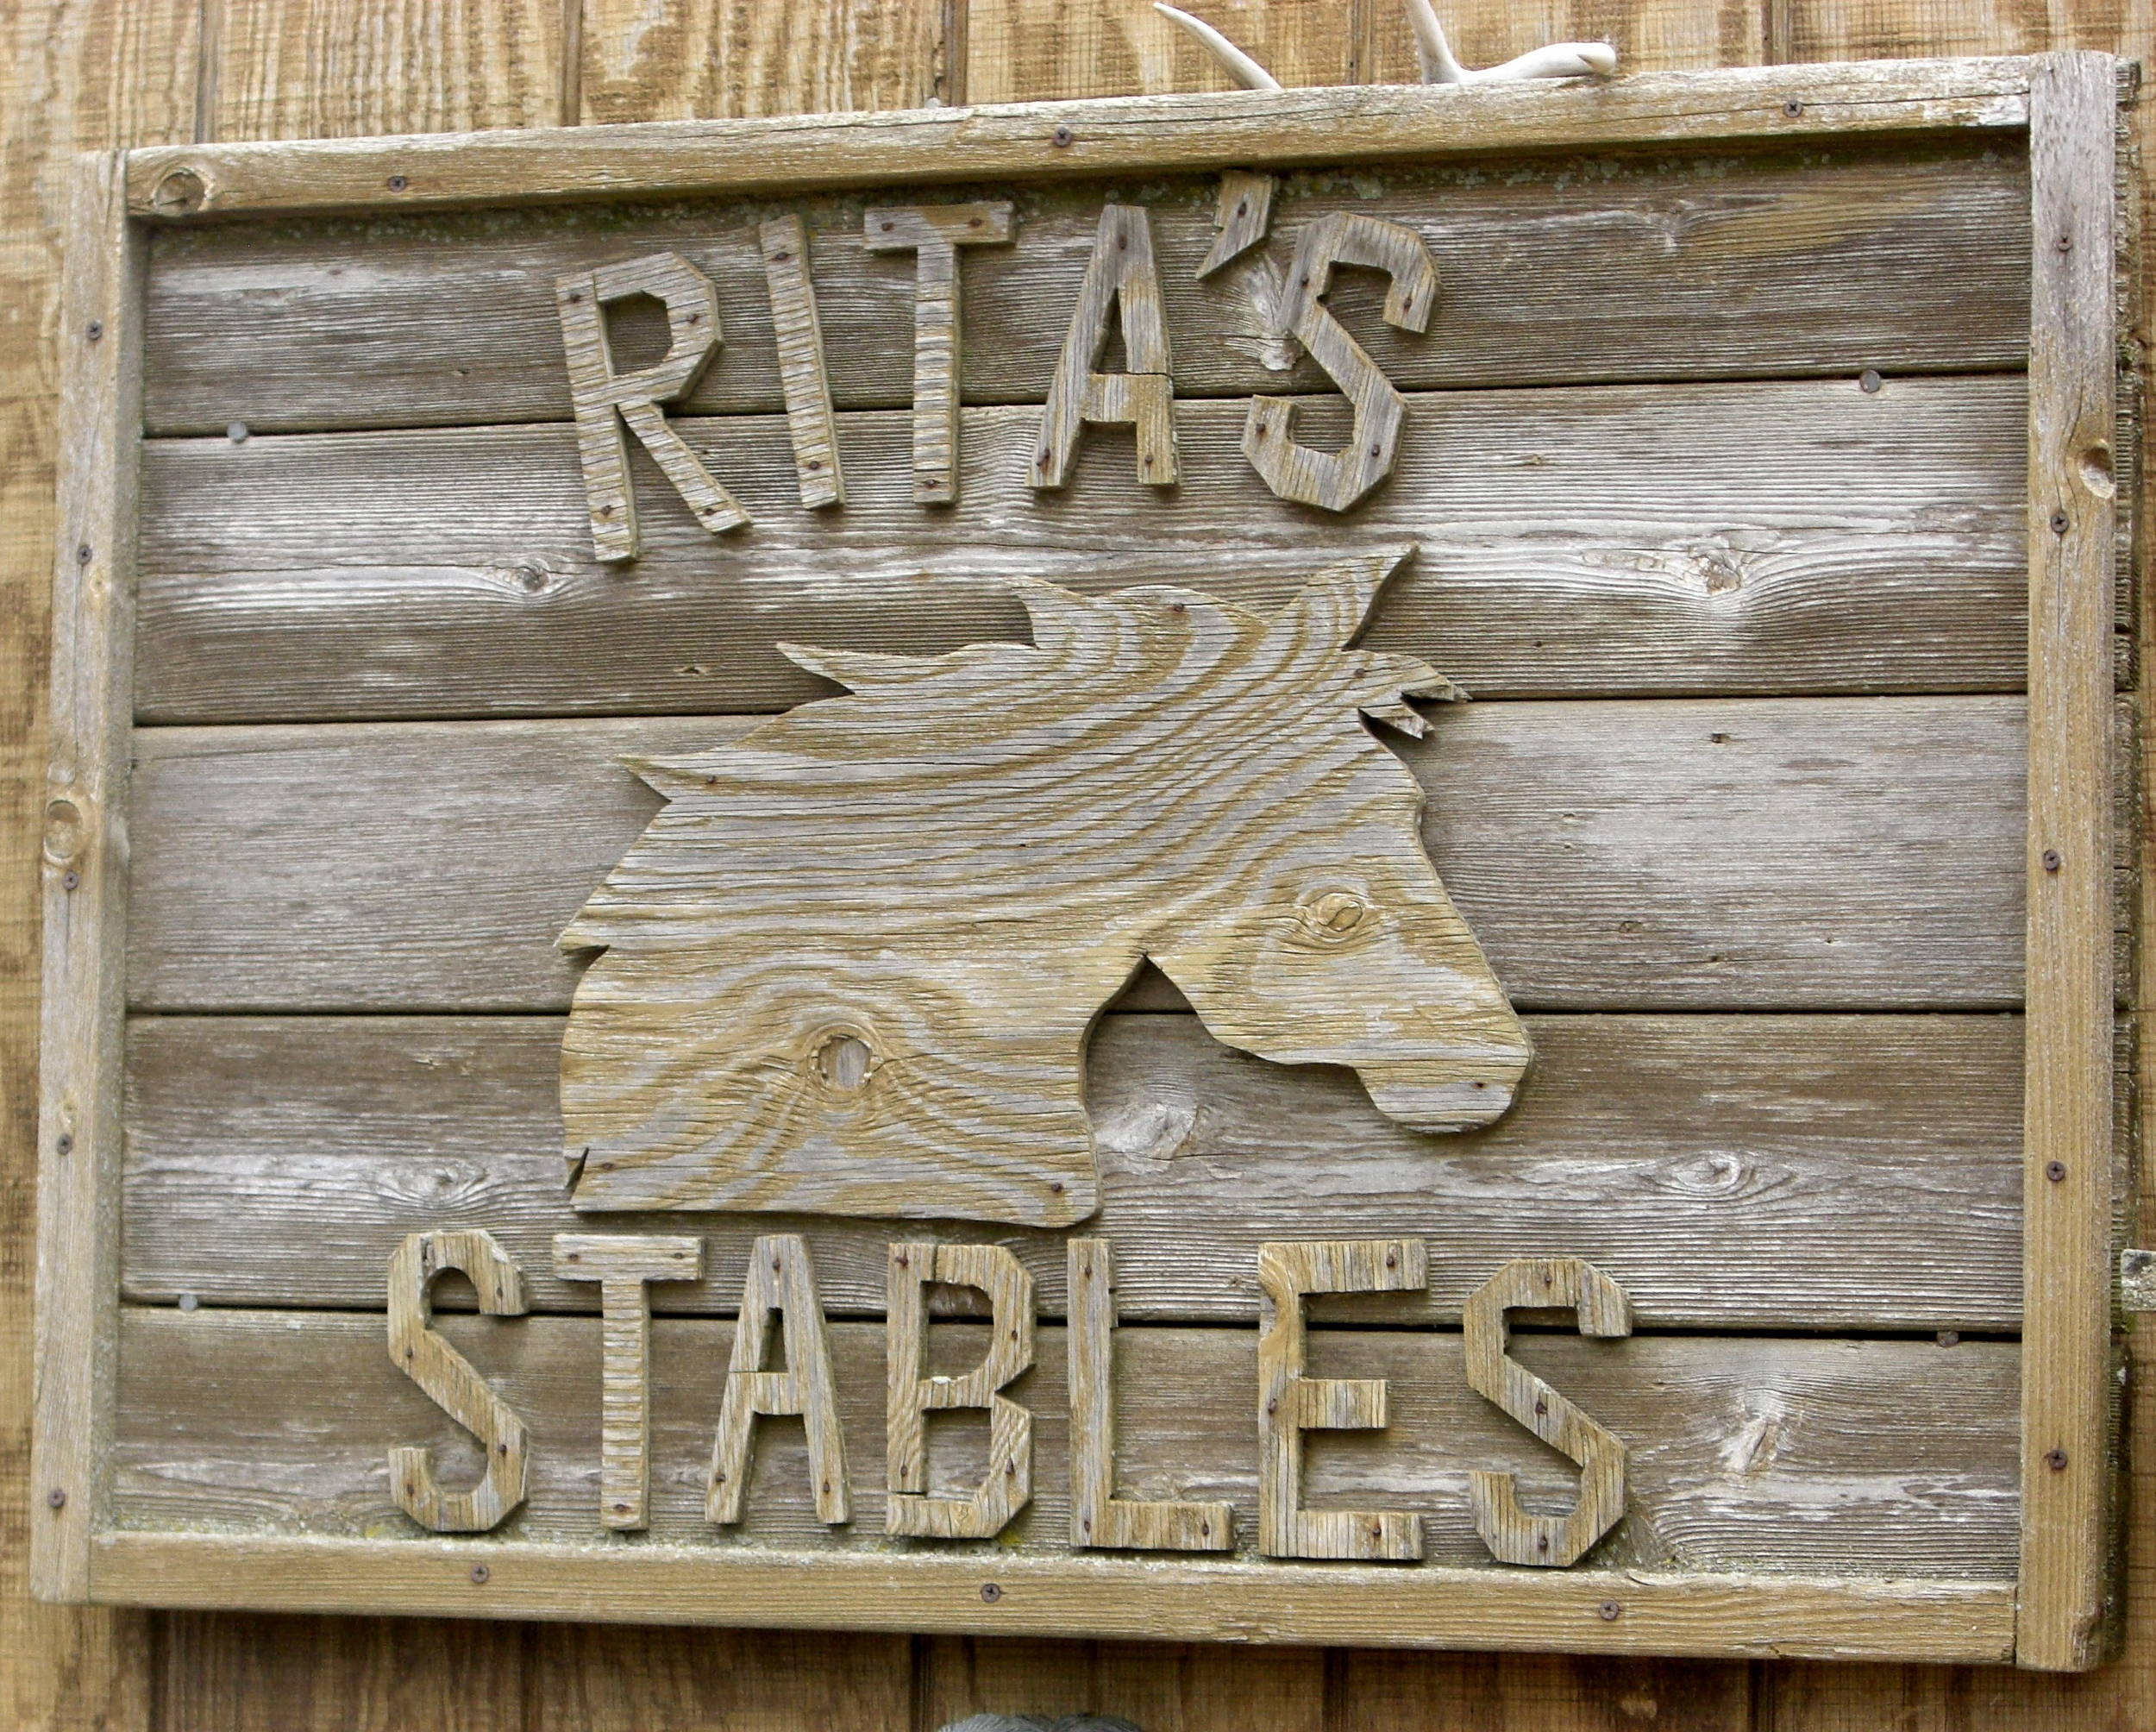 Rita's stables in Montauk.